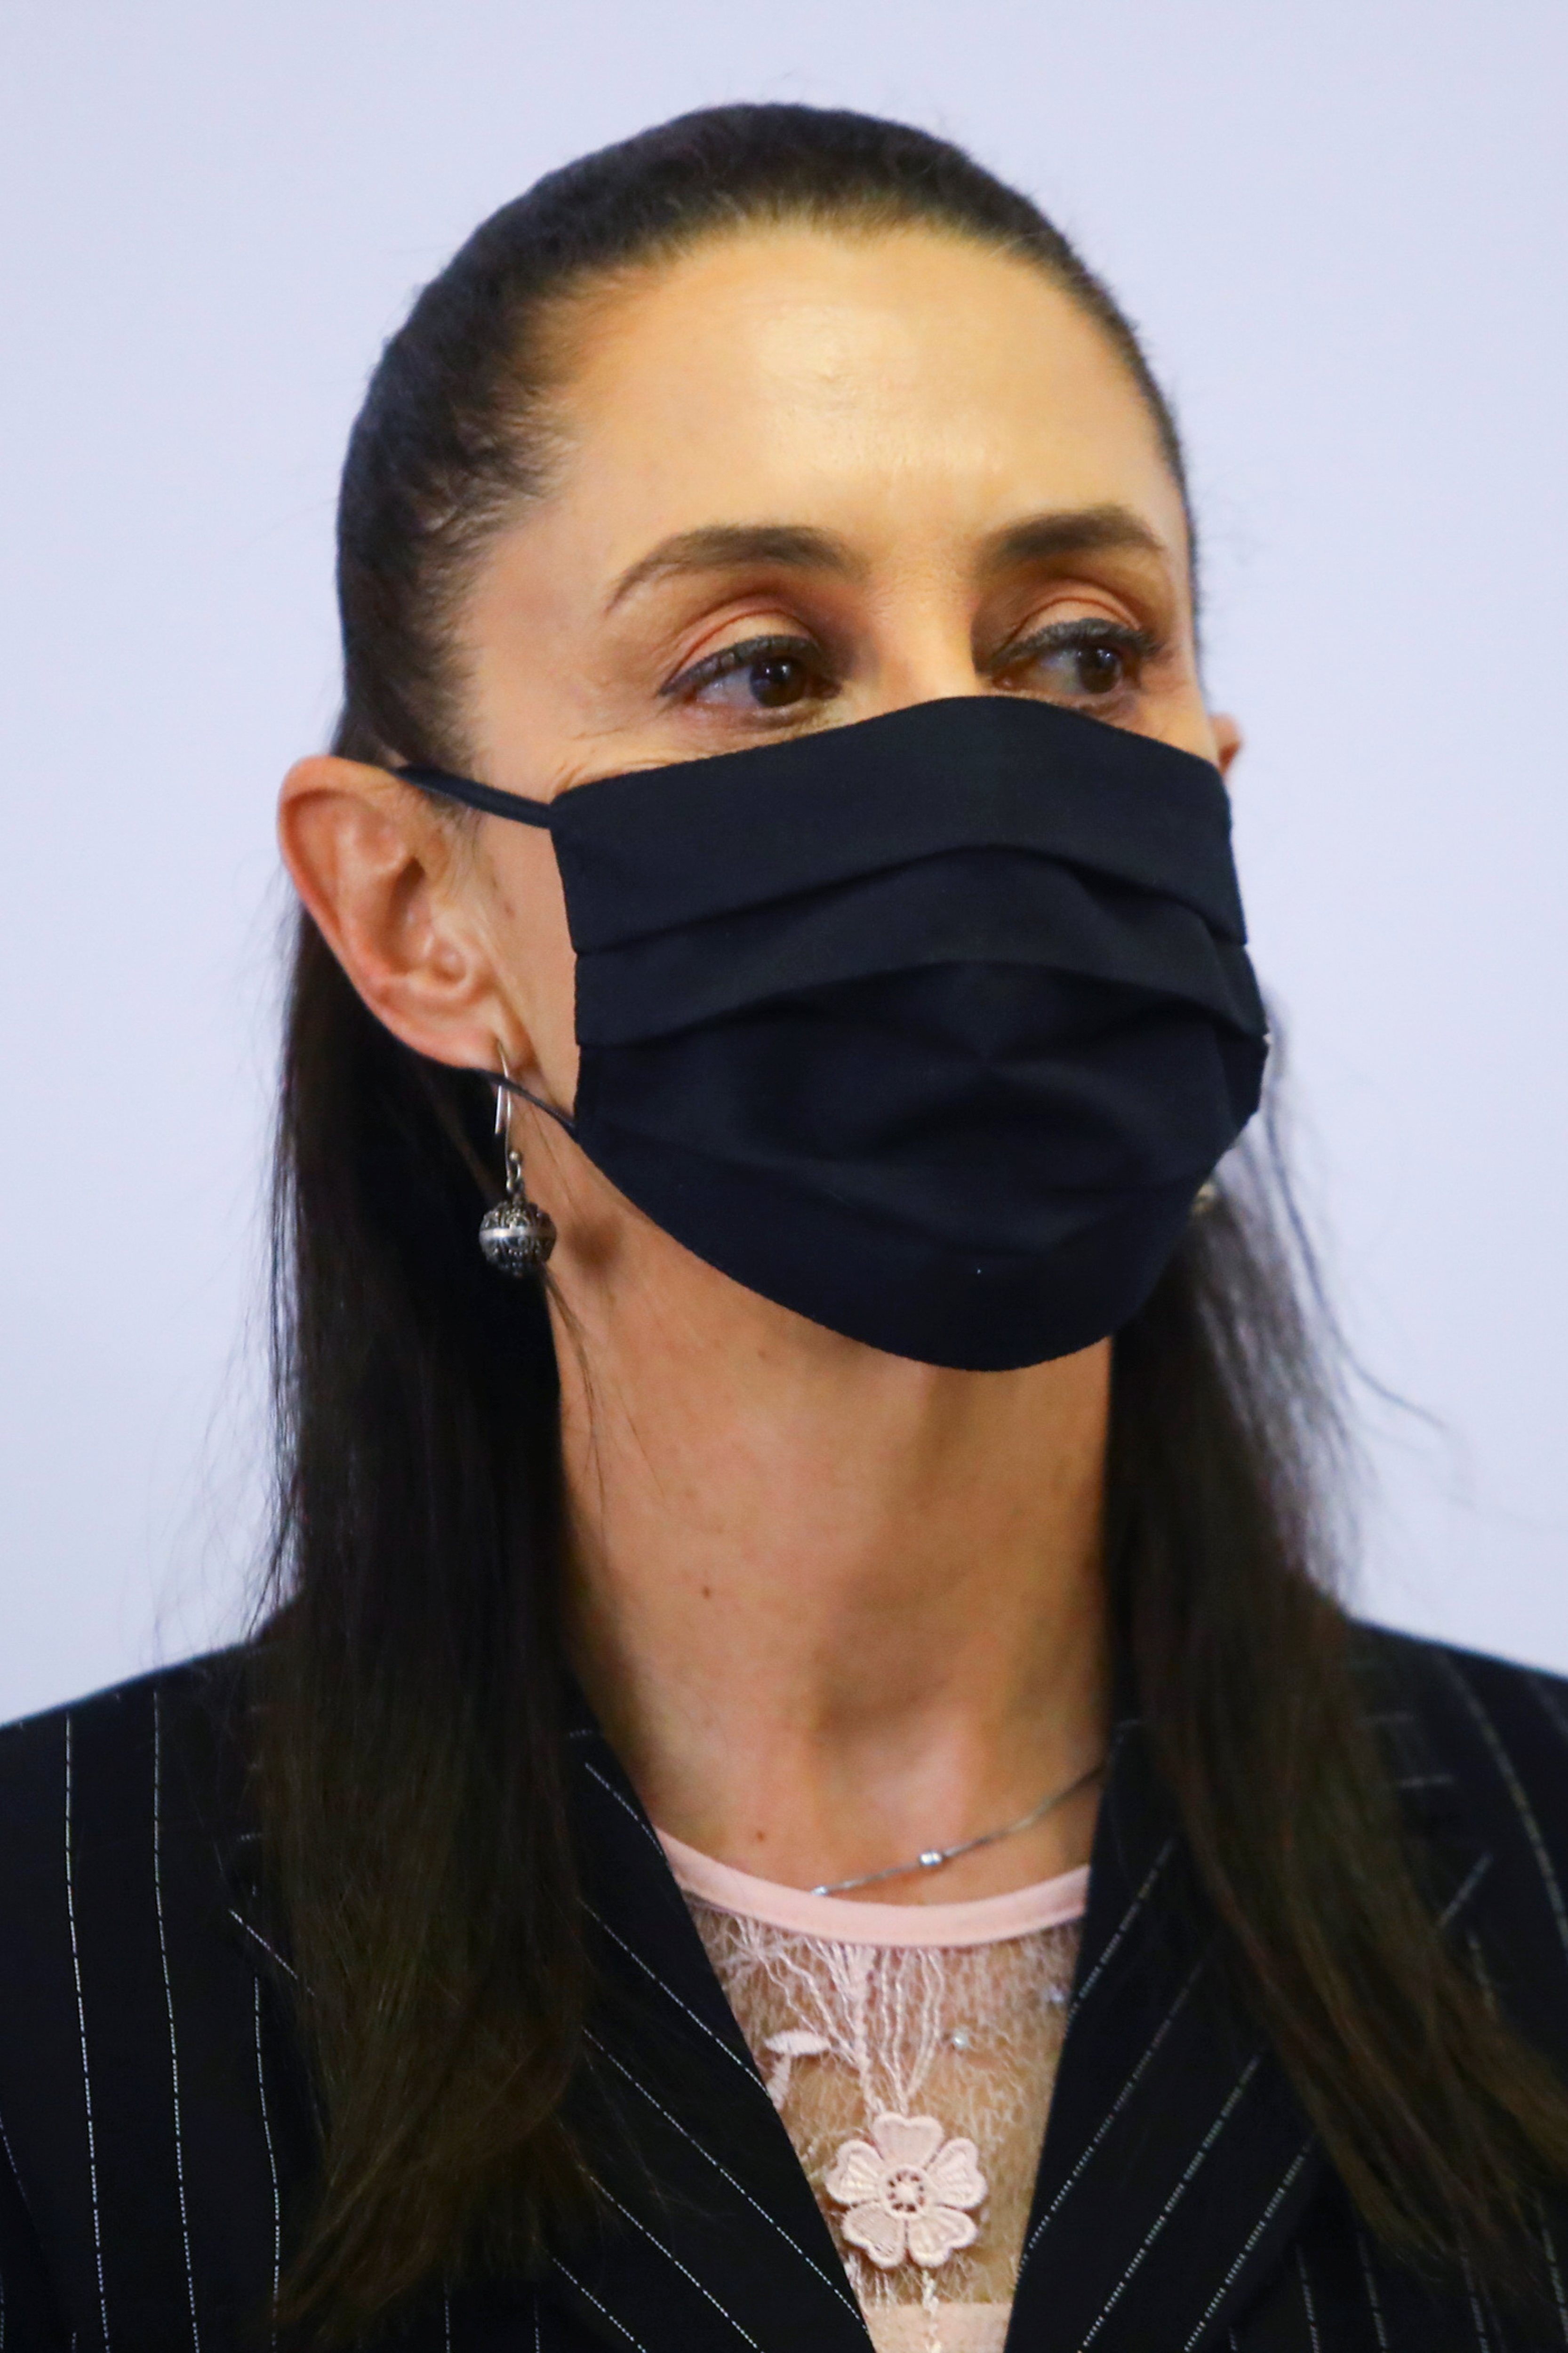 Mexico City's mayor Claudia Sheinbaum is pictured during an event to deliver a preliminary report on the deadly metro overpass collapse at the Secretariat for Comprehensive Risk Management and Civil Protection headquarters in Mexico City, Mexico June 16, 2021. REUTERS/Edgard Garrido